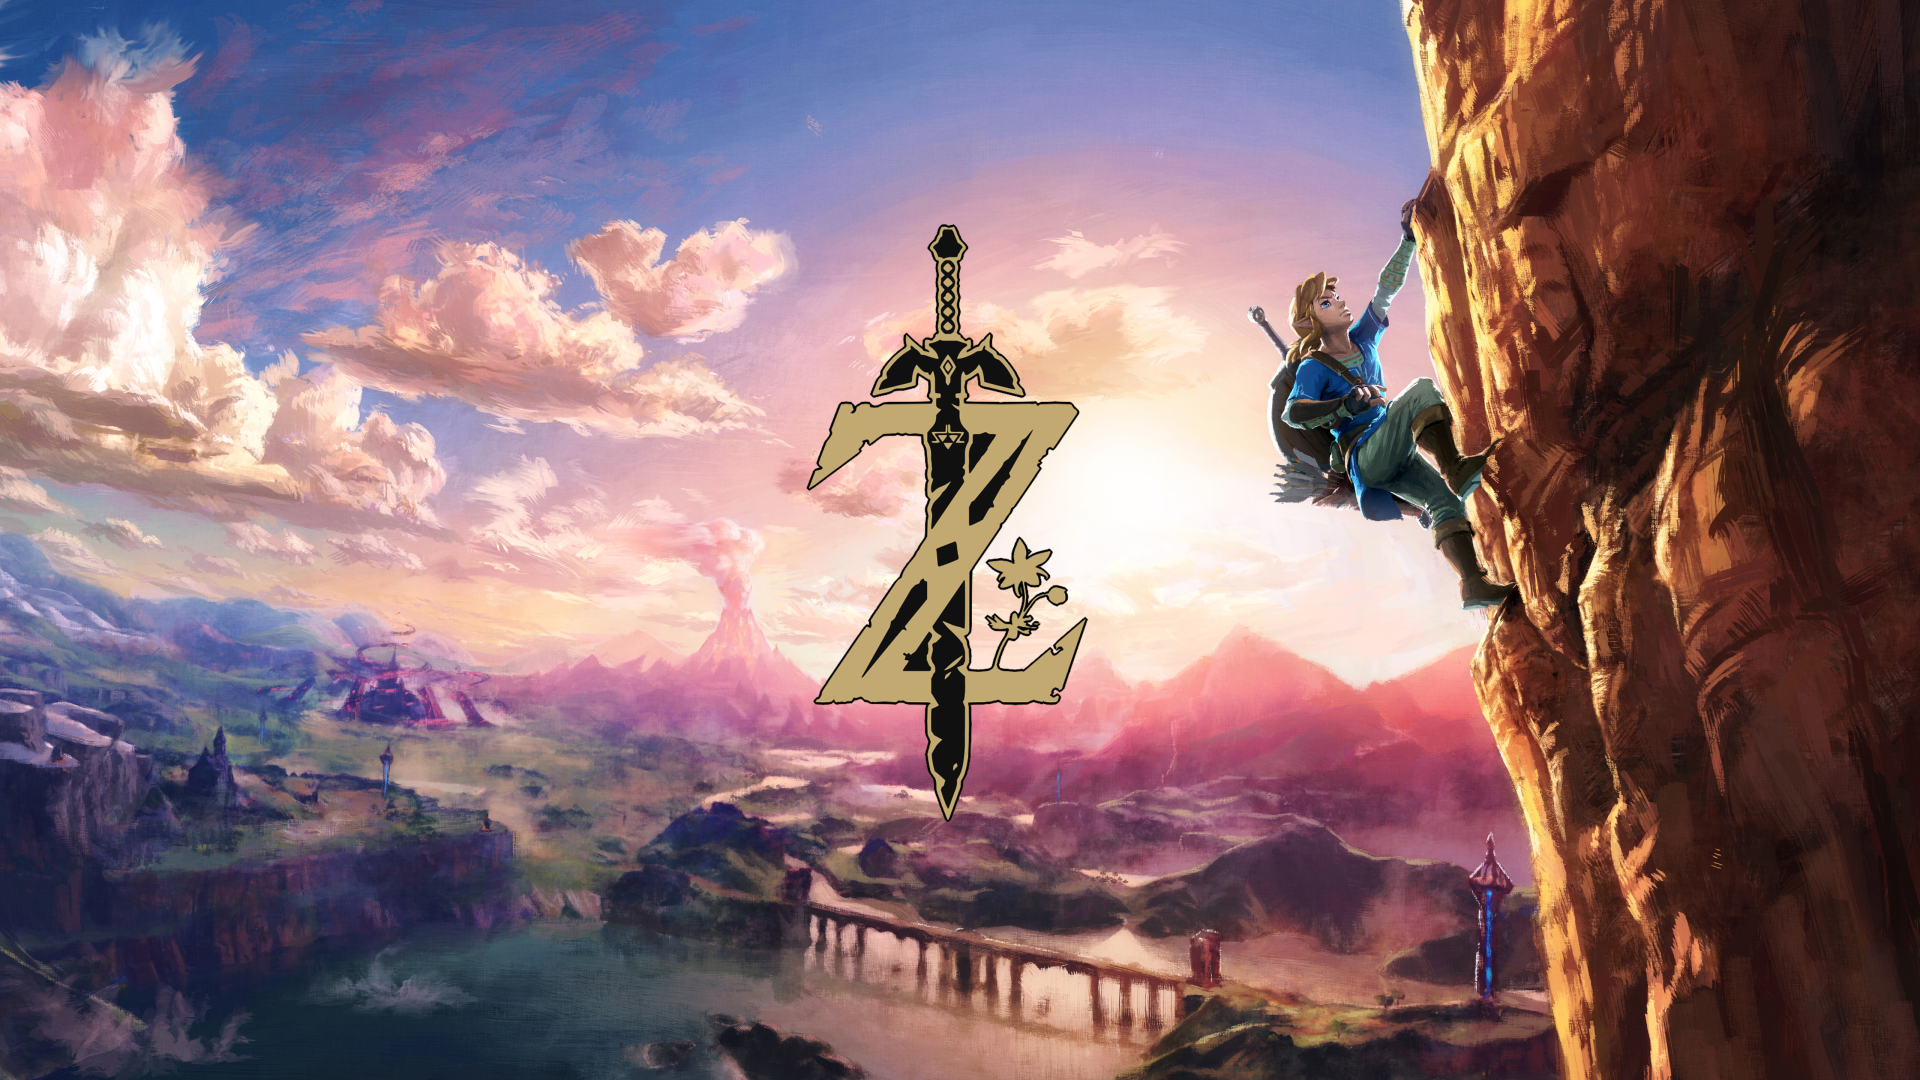 Video Game - The Legend of Zelda: Breath of the Wild  Link Hyrule Wallpaper